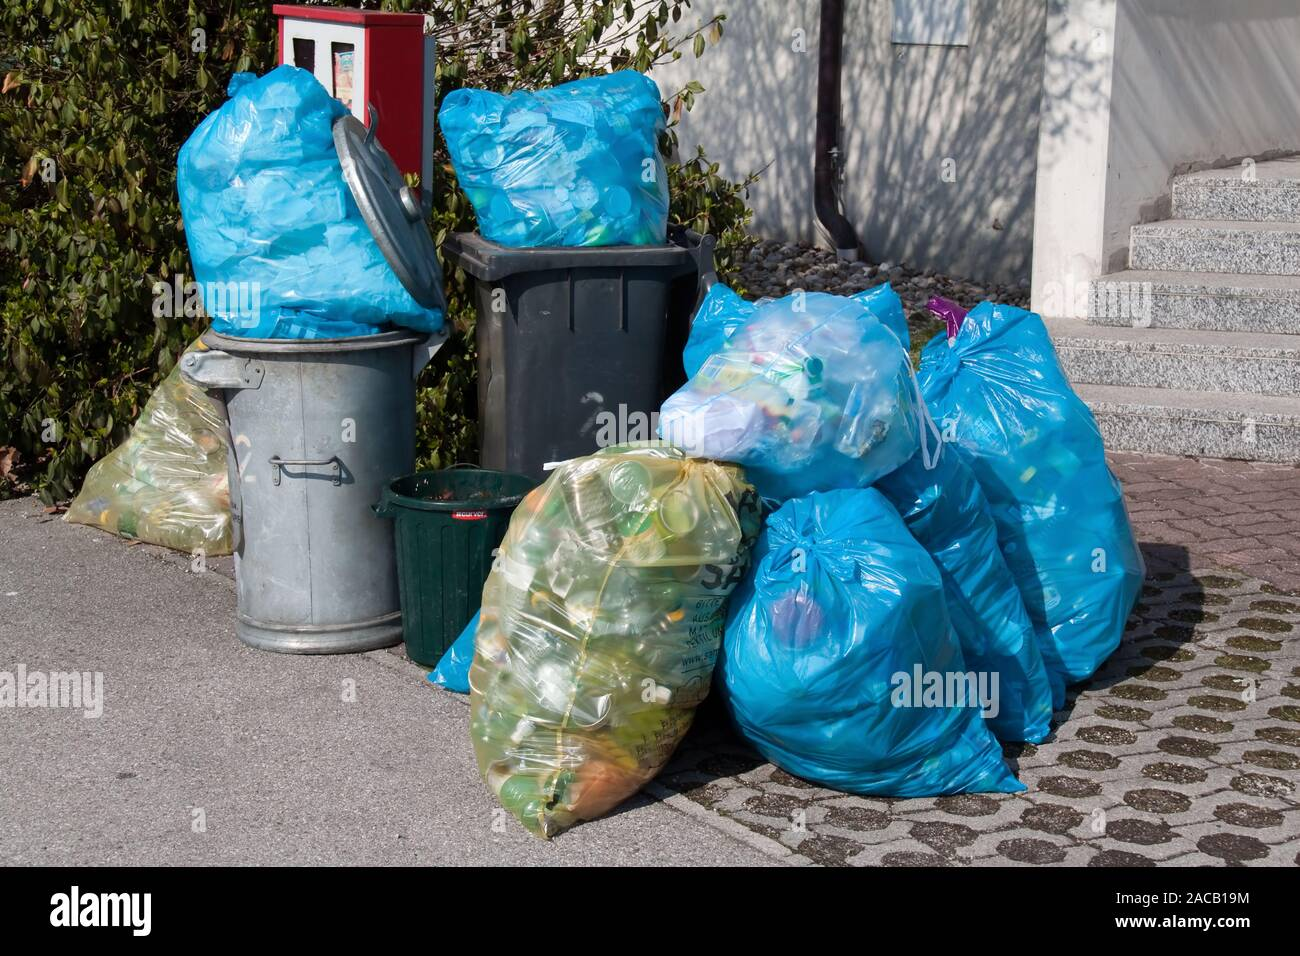 Plastic waste - Waste collection - Waste separation Stock Photo